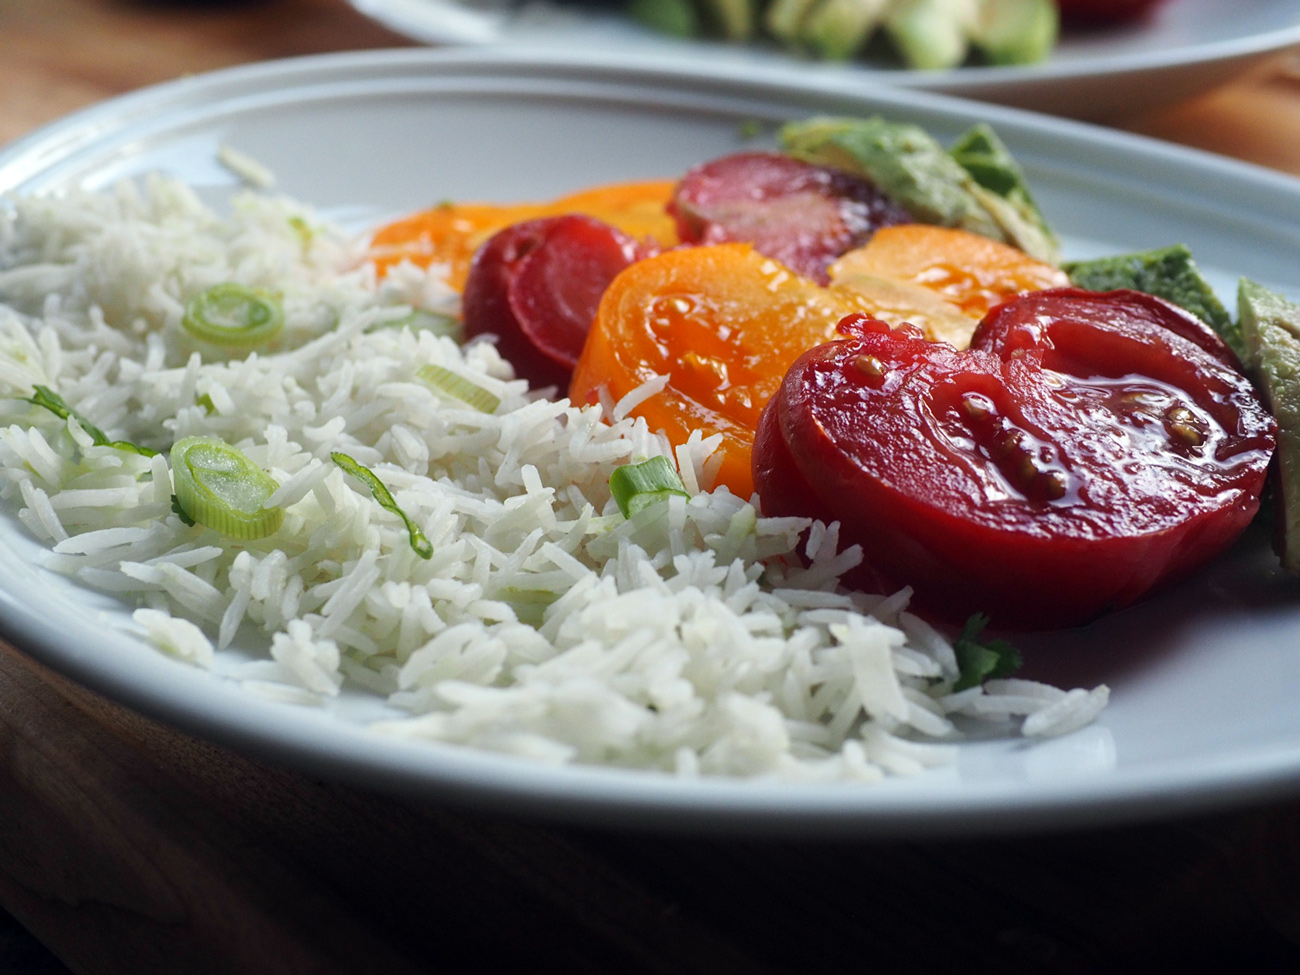 Or just lay the rice up against the tomatoes.